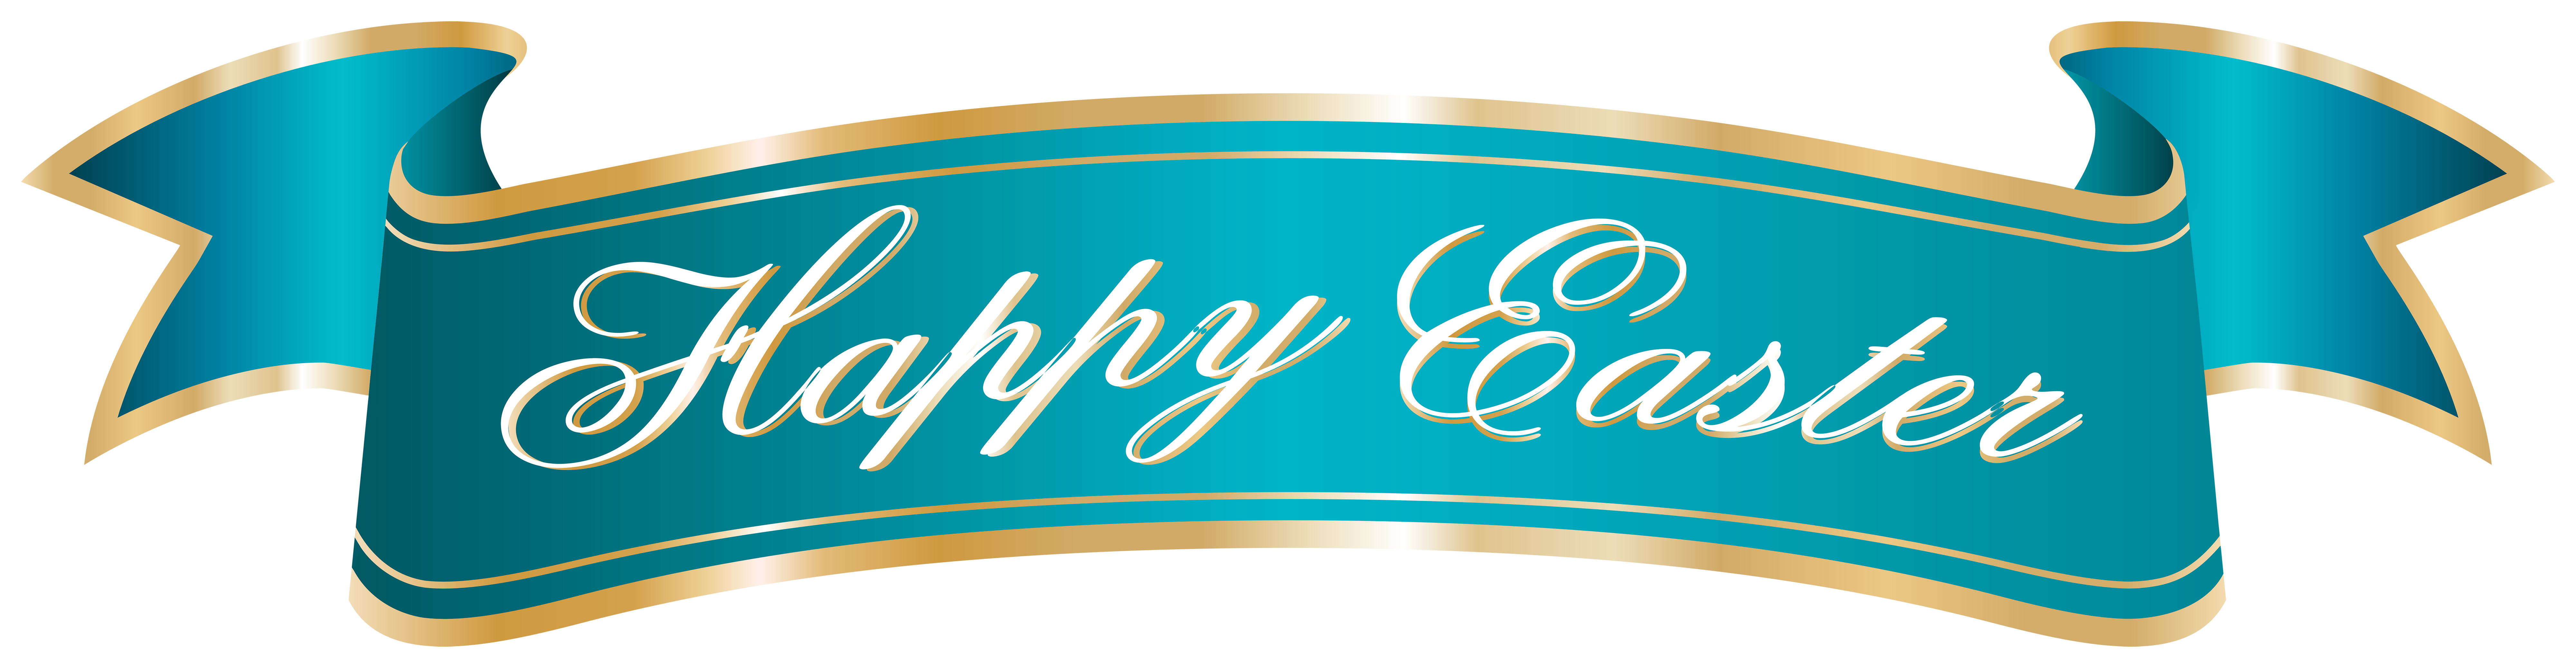 image regarding Happy Easter Banner Printable called delighted easter banner clipart 20 totally free Cliparts Down load